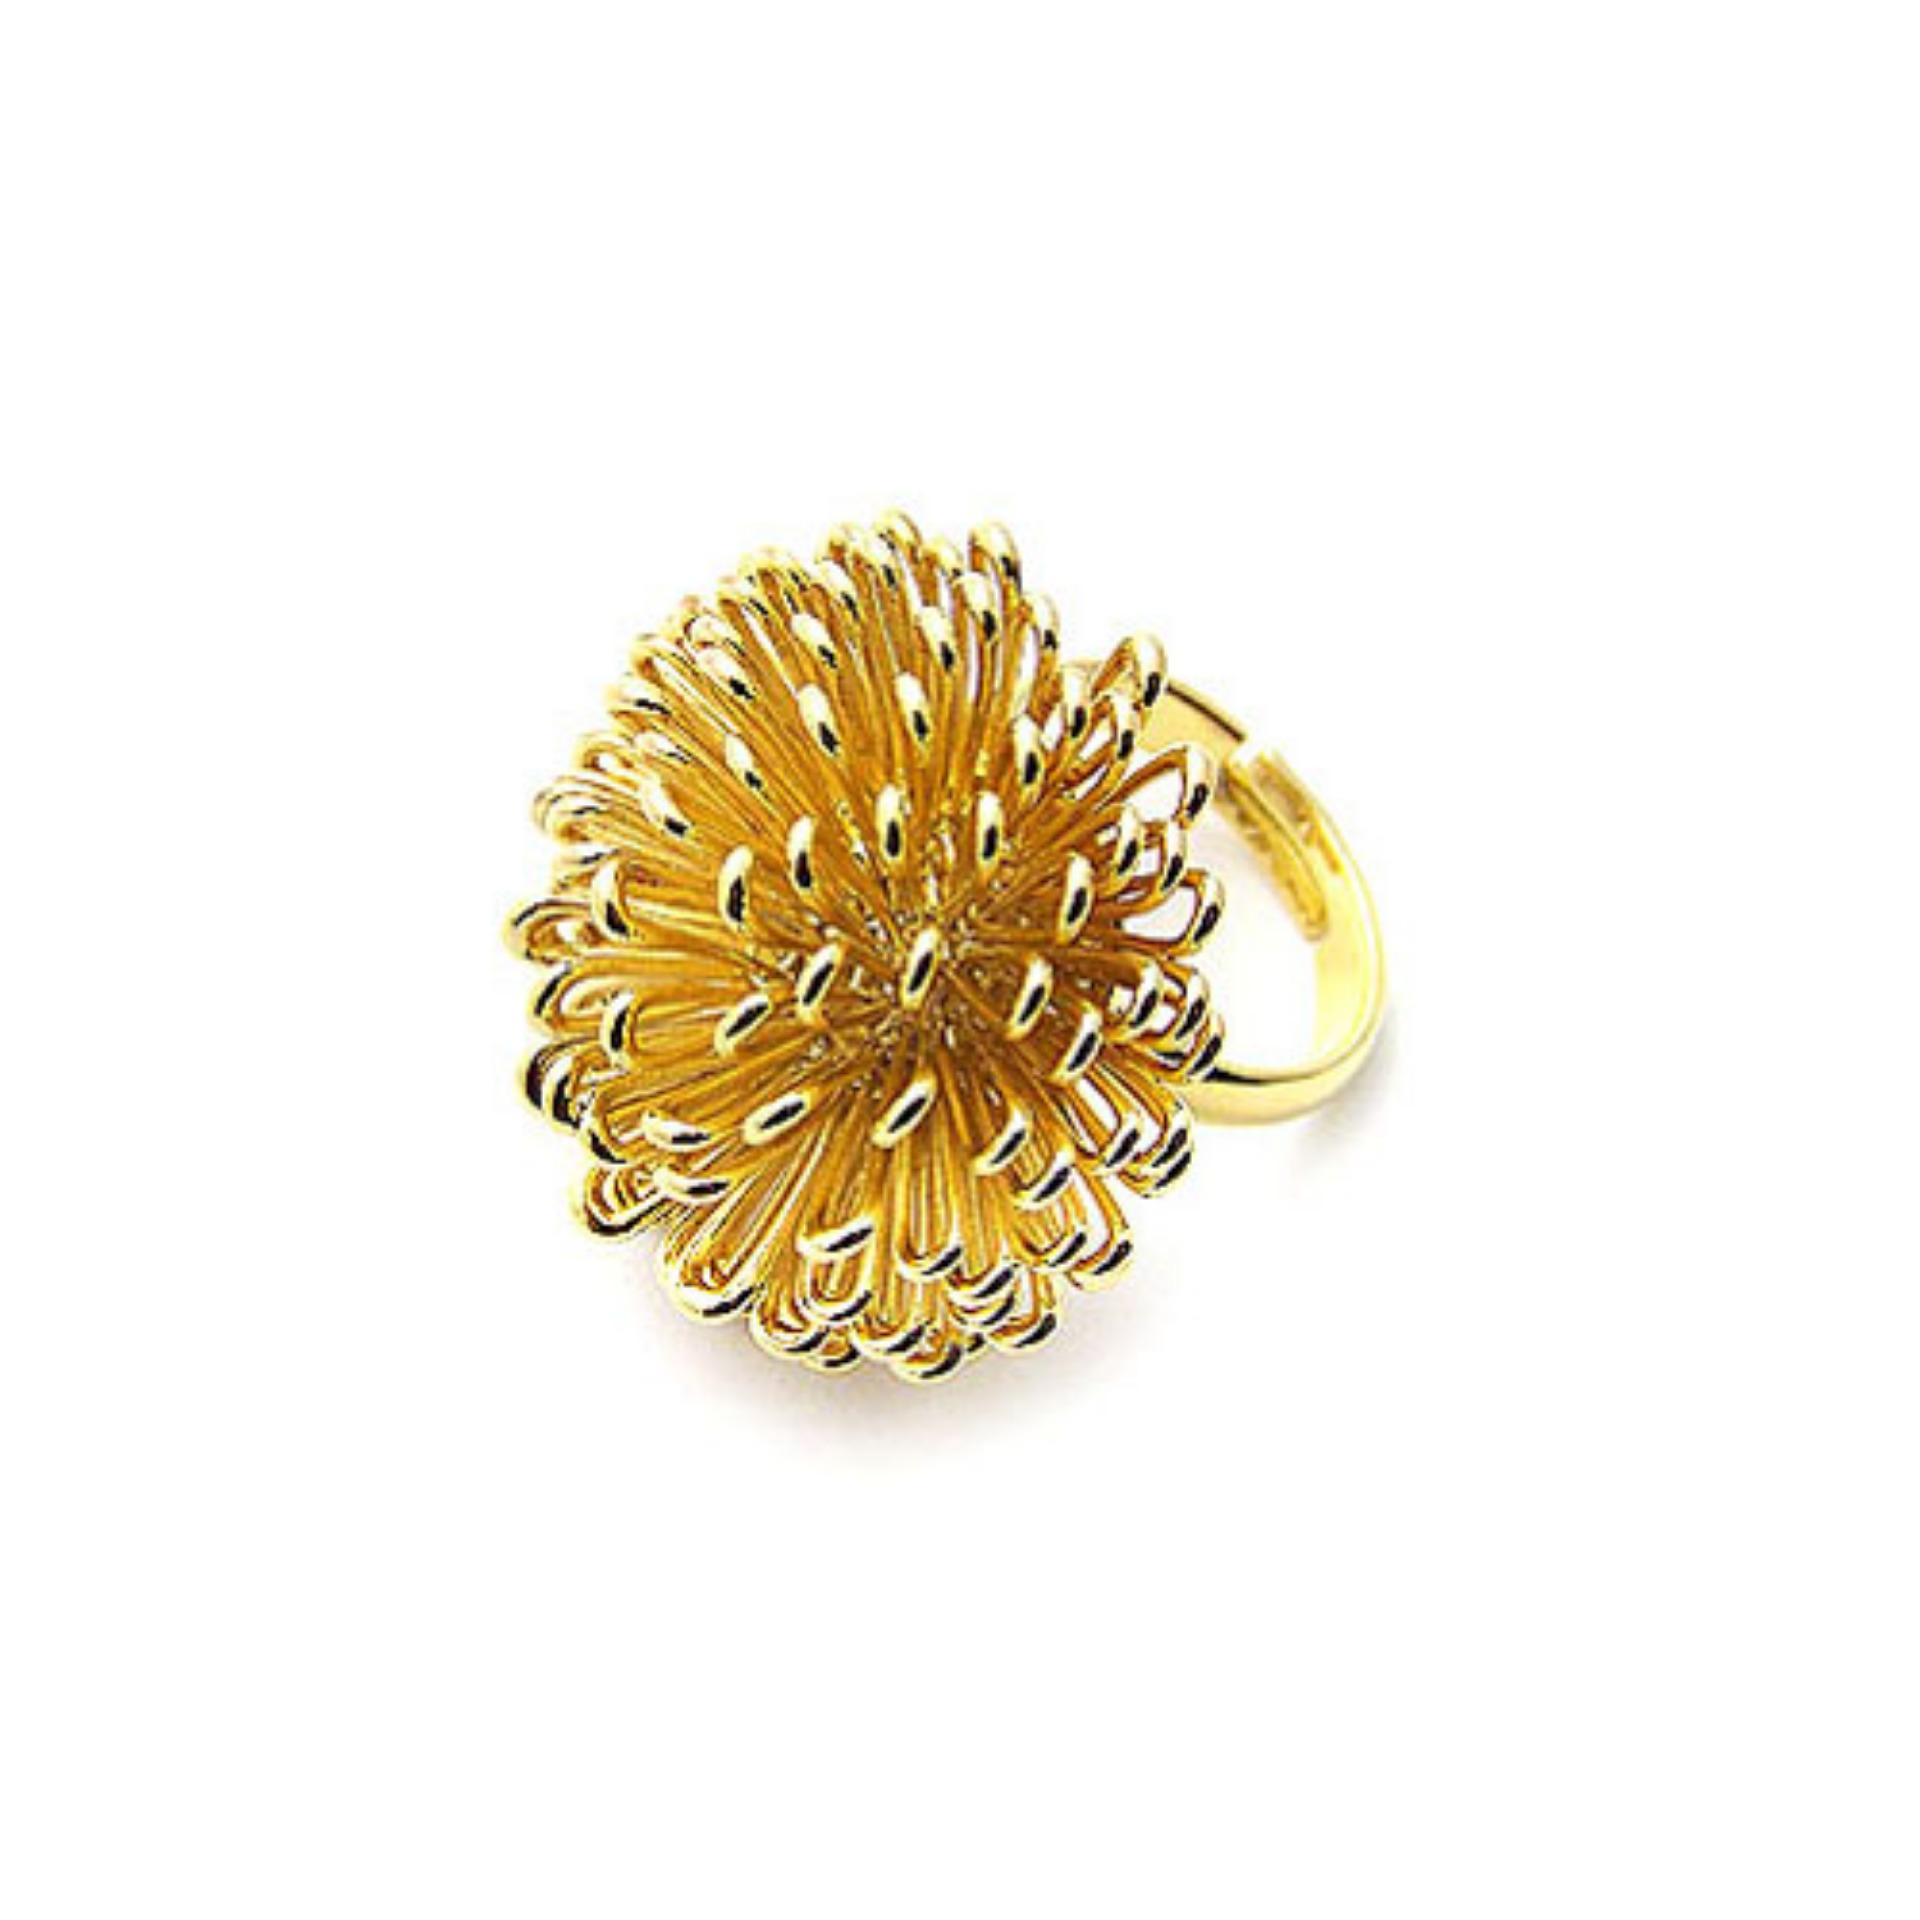 Bella Co Ring Kzcr417 A 7 Aksesoris Perhiasan Cincin Lapis Emas Tiaria Kzcr328 8 Blink Model Bunga Dandelion